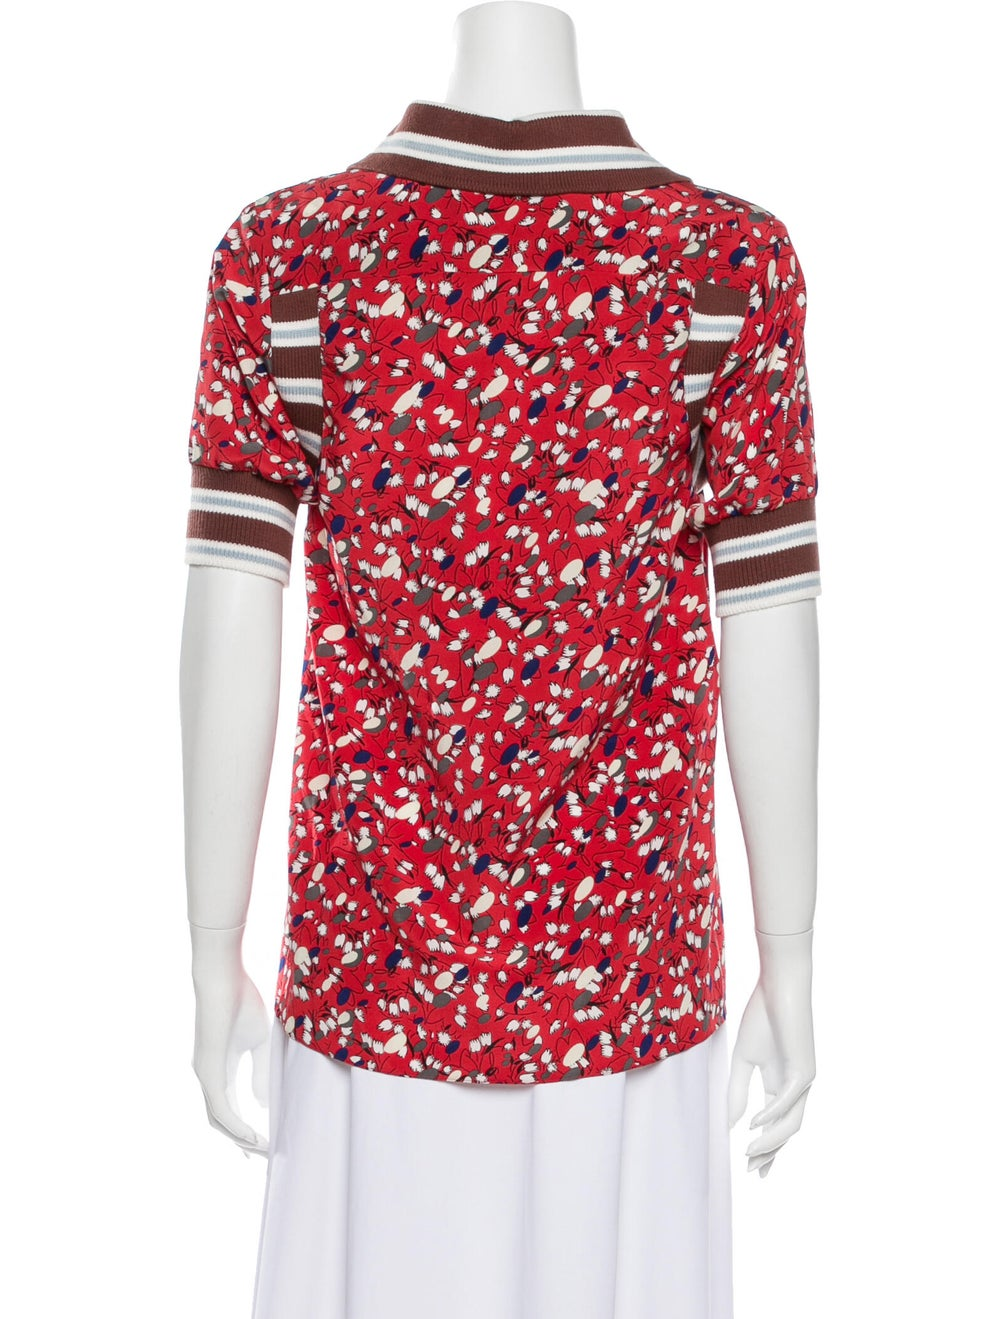 Marni Silk Floral Print Button-Up Top Red - image 3